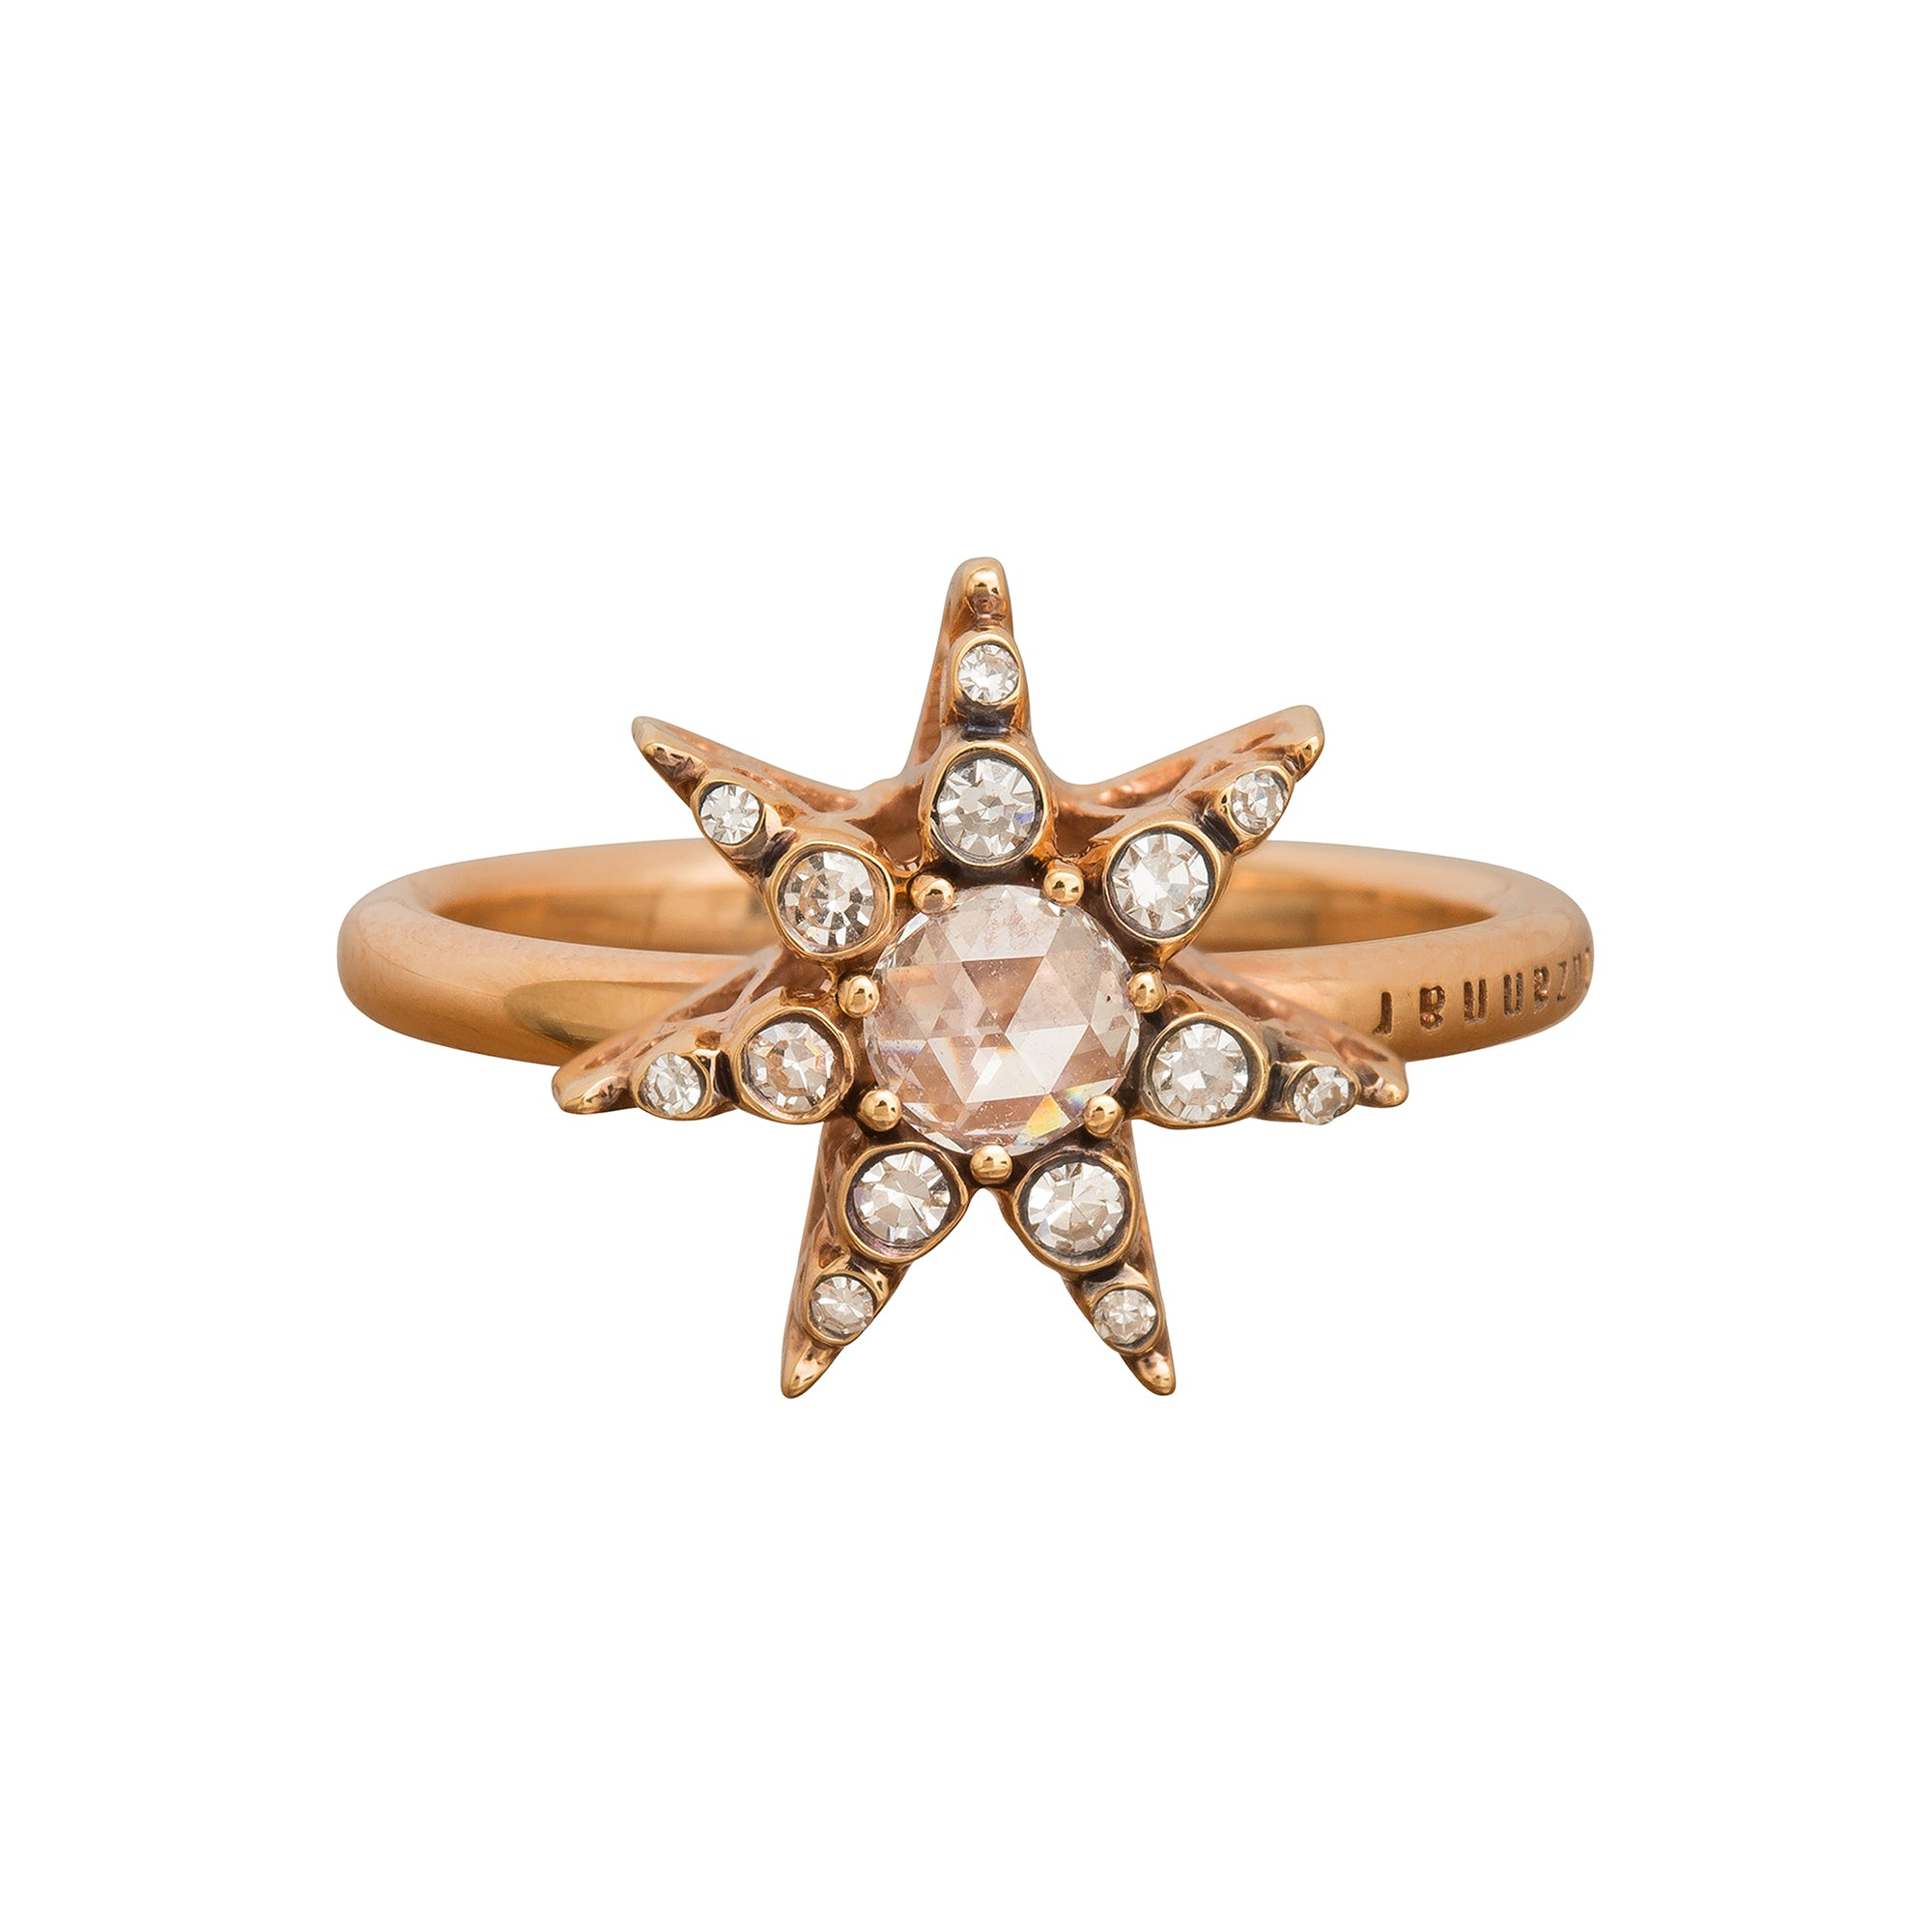 Istanbul Diamond Star Ring by Selim Mouzannar for Broken English Jewelry